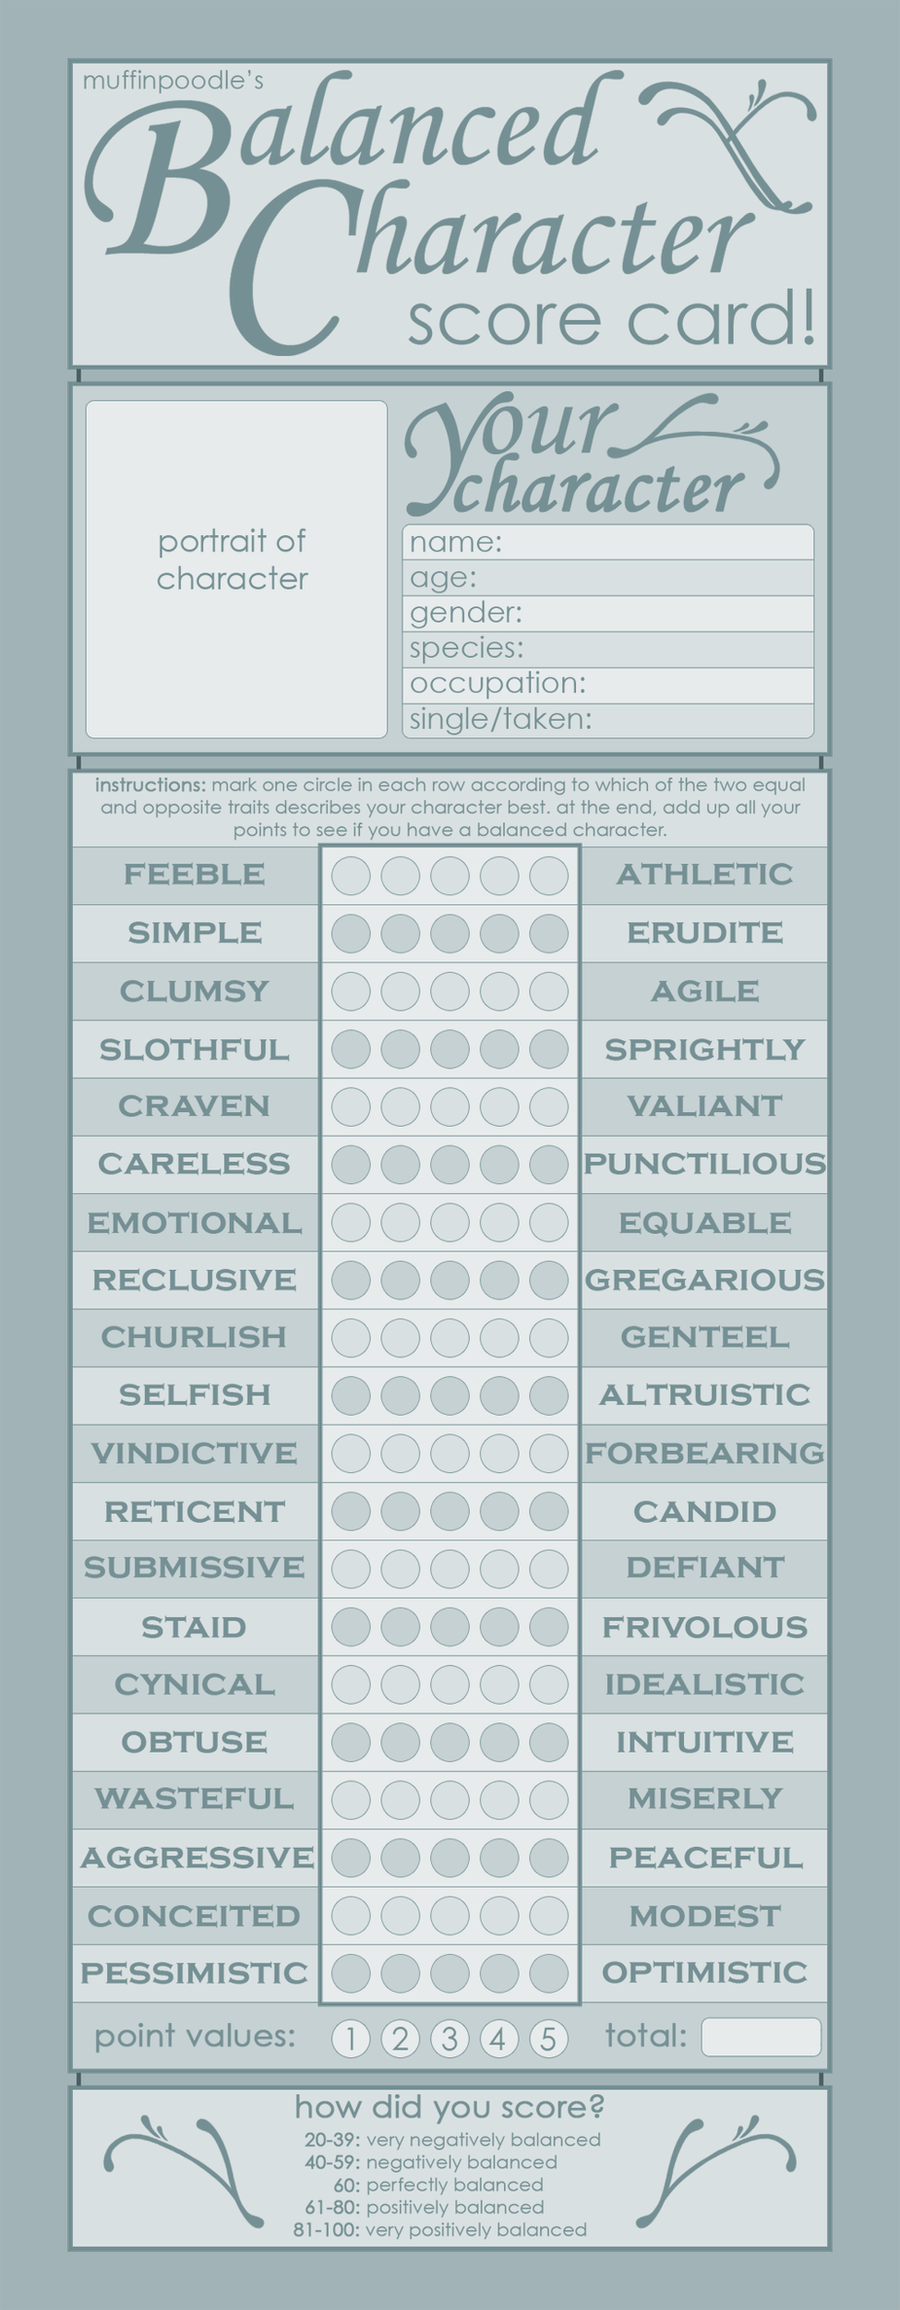 Balanced Character Score Card by muffinpoodle